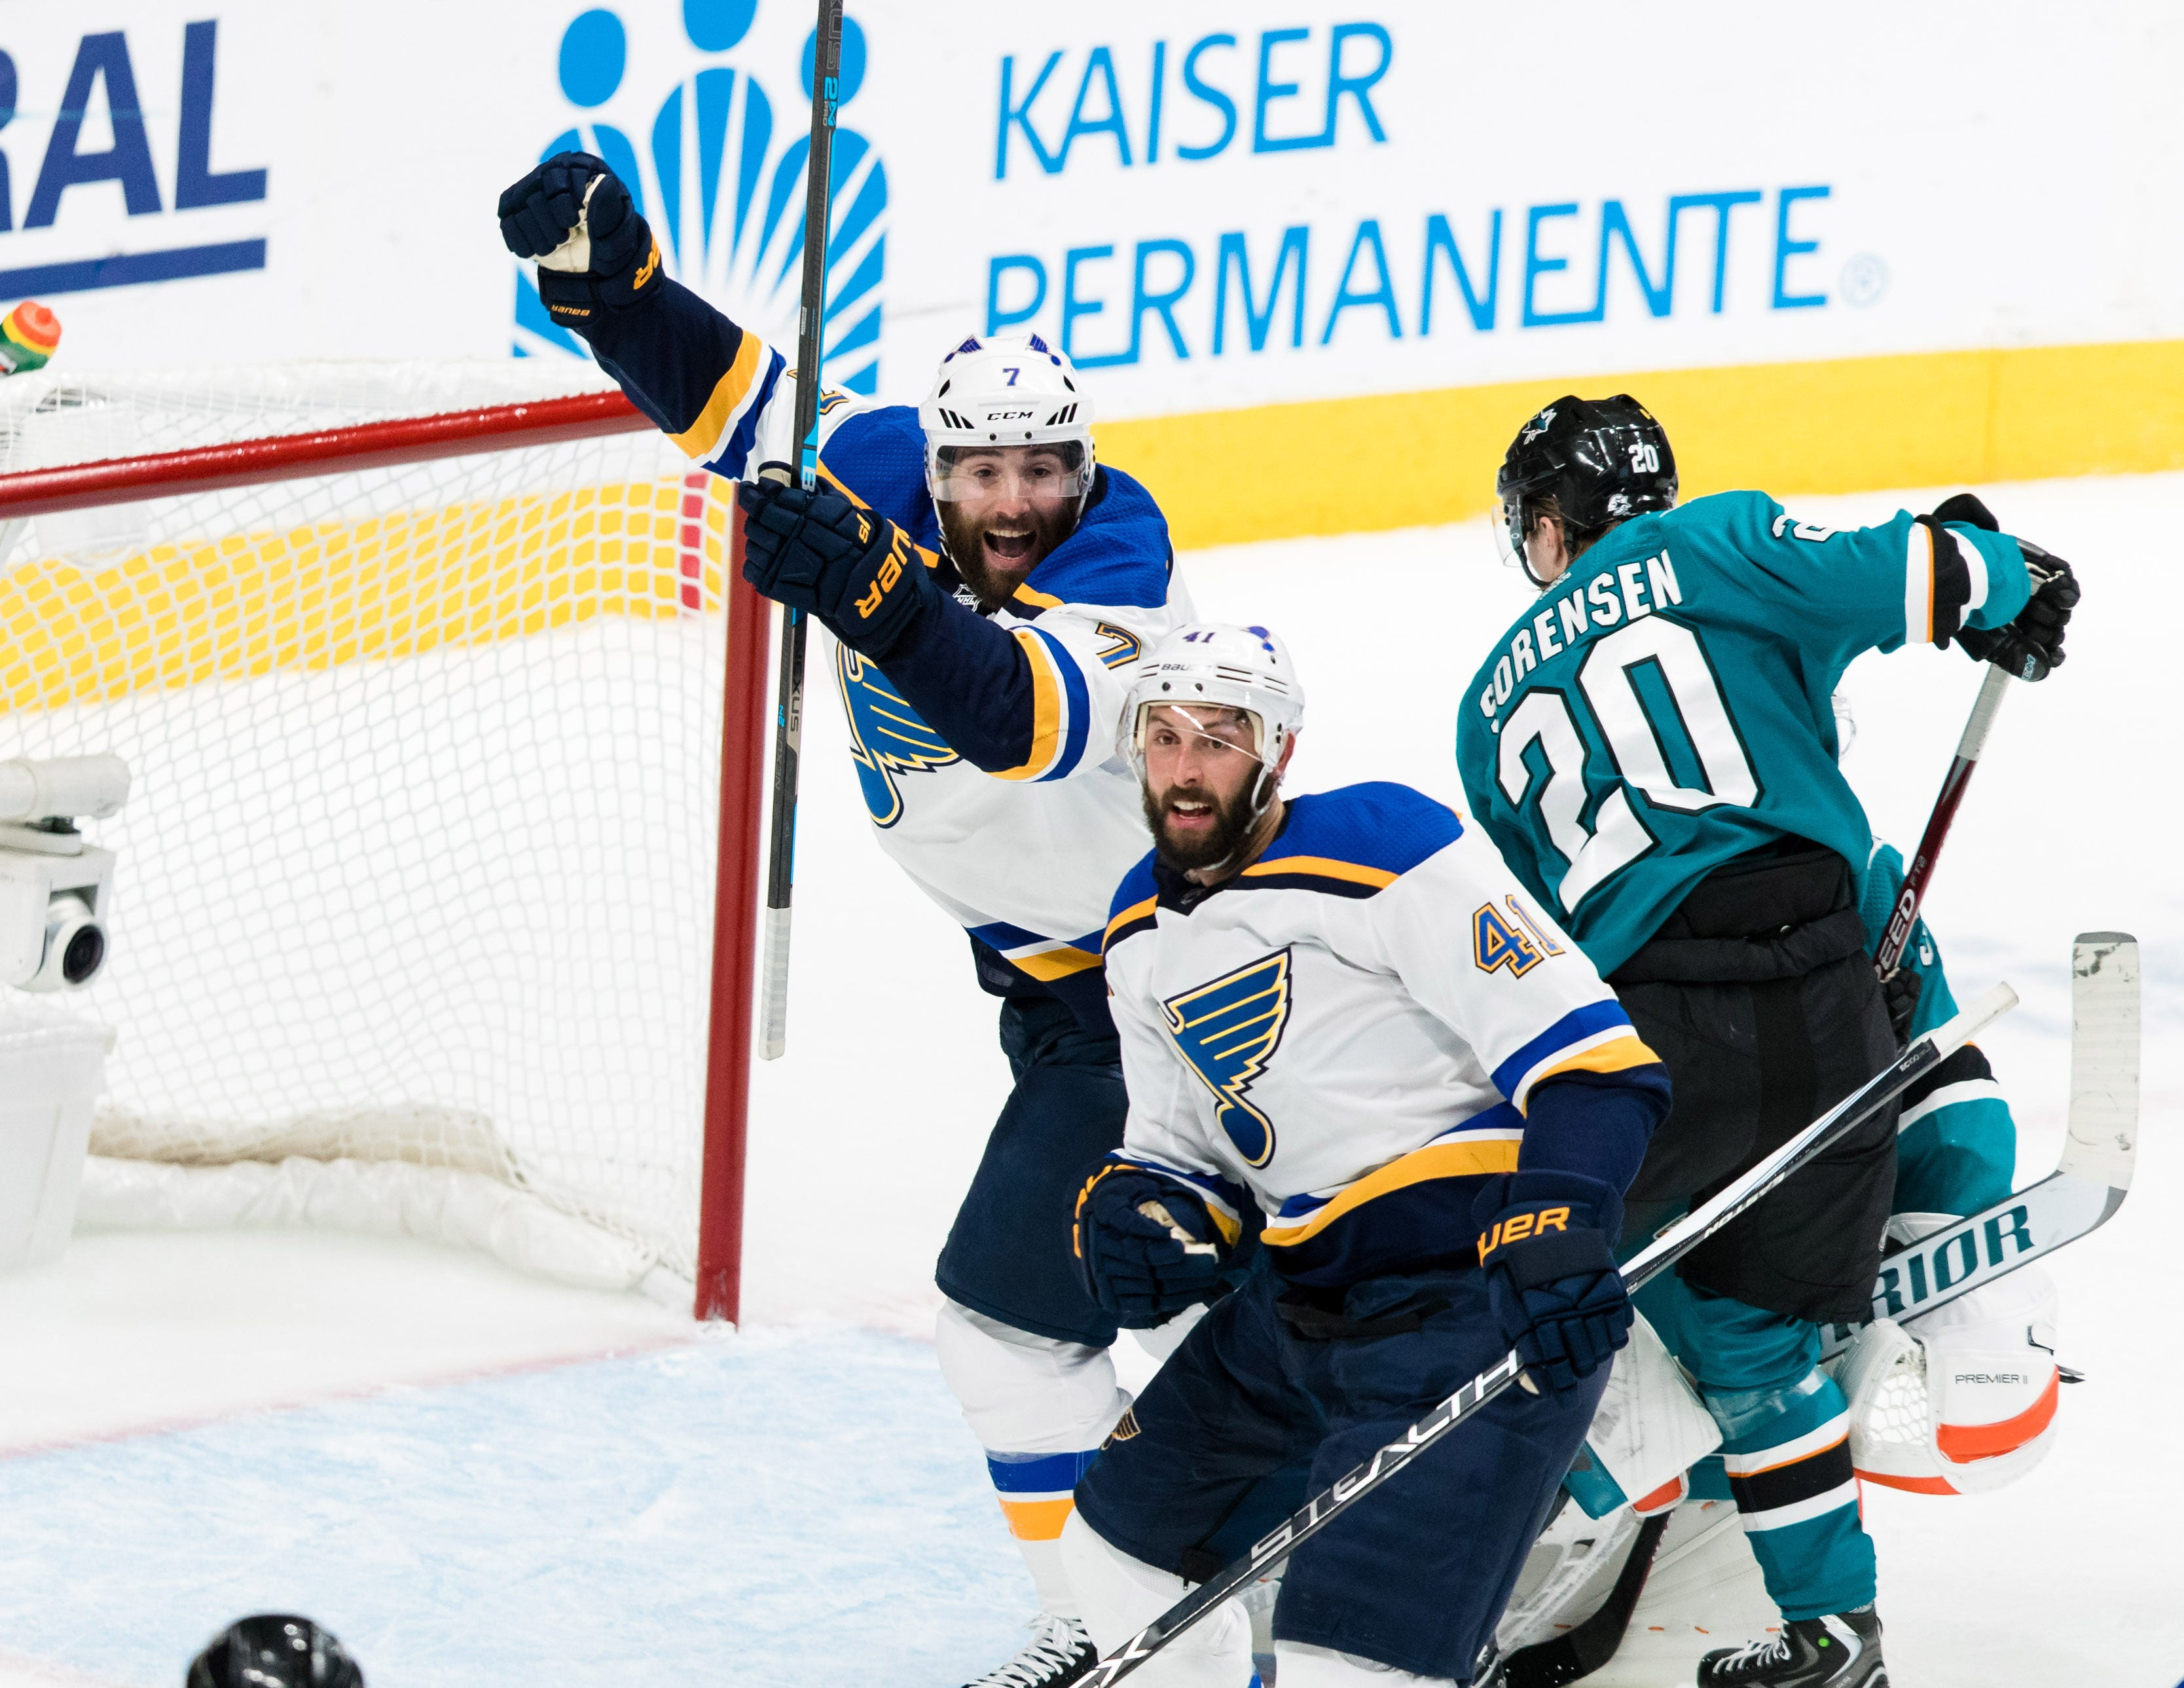 St. Louis Blues win Game 2 of Western Conference final, even up series vs. San Jose Sharks